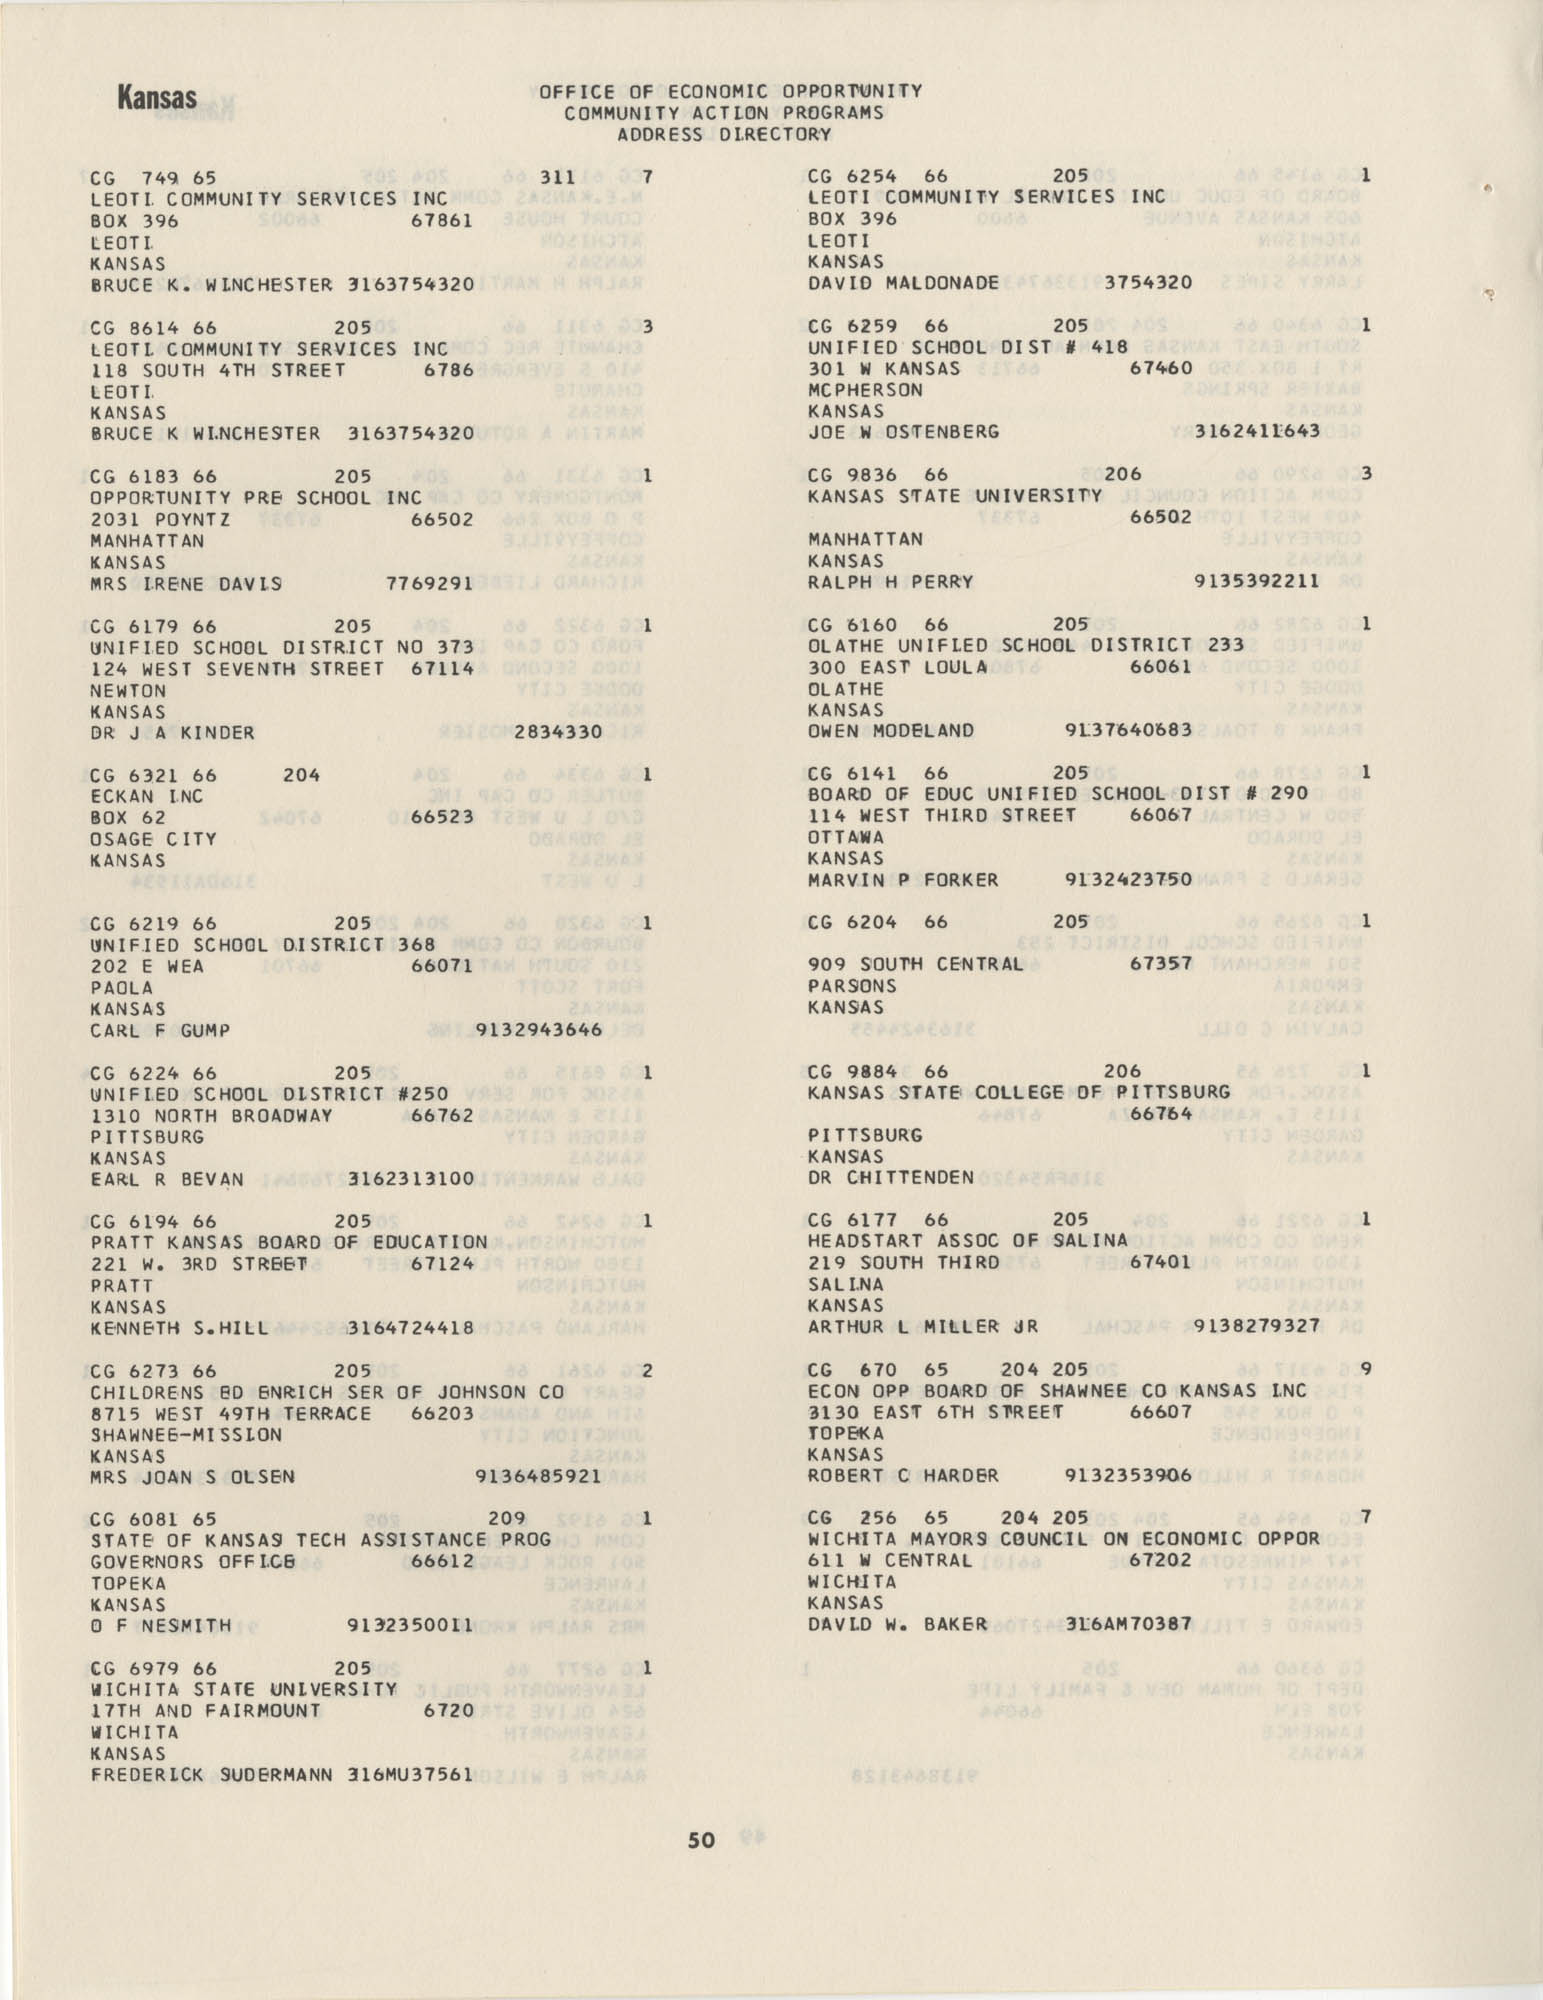 Community Action Programs Directory, June 15, 1966, Page 50